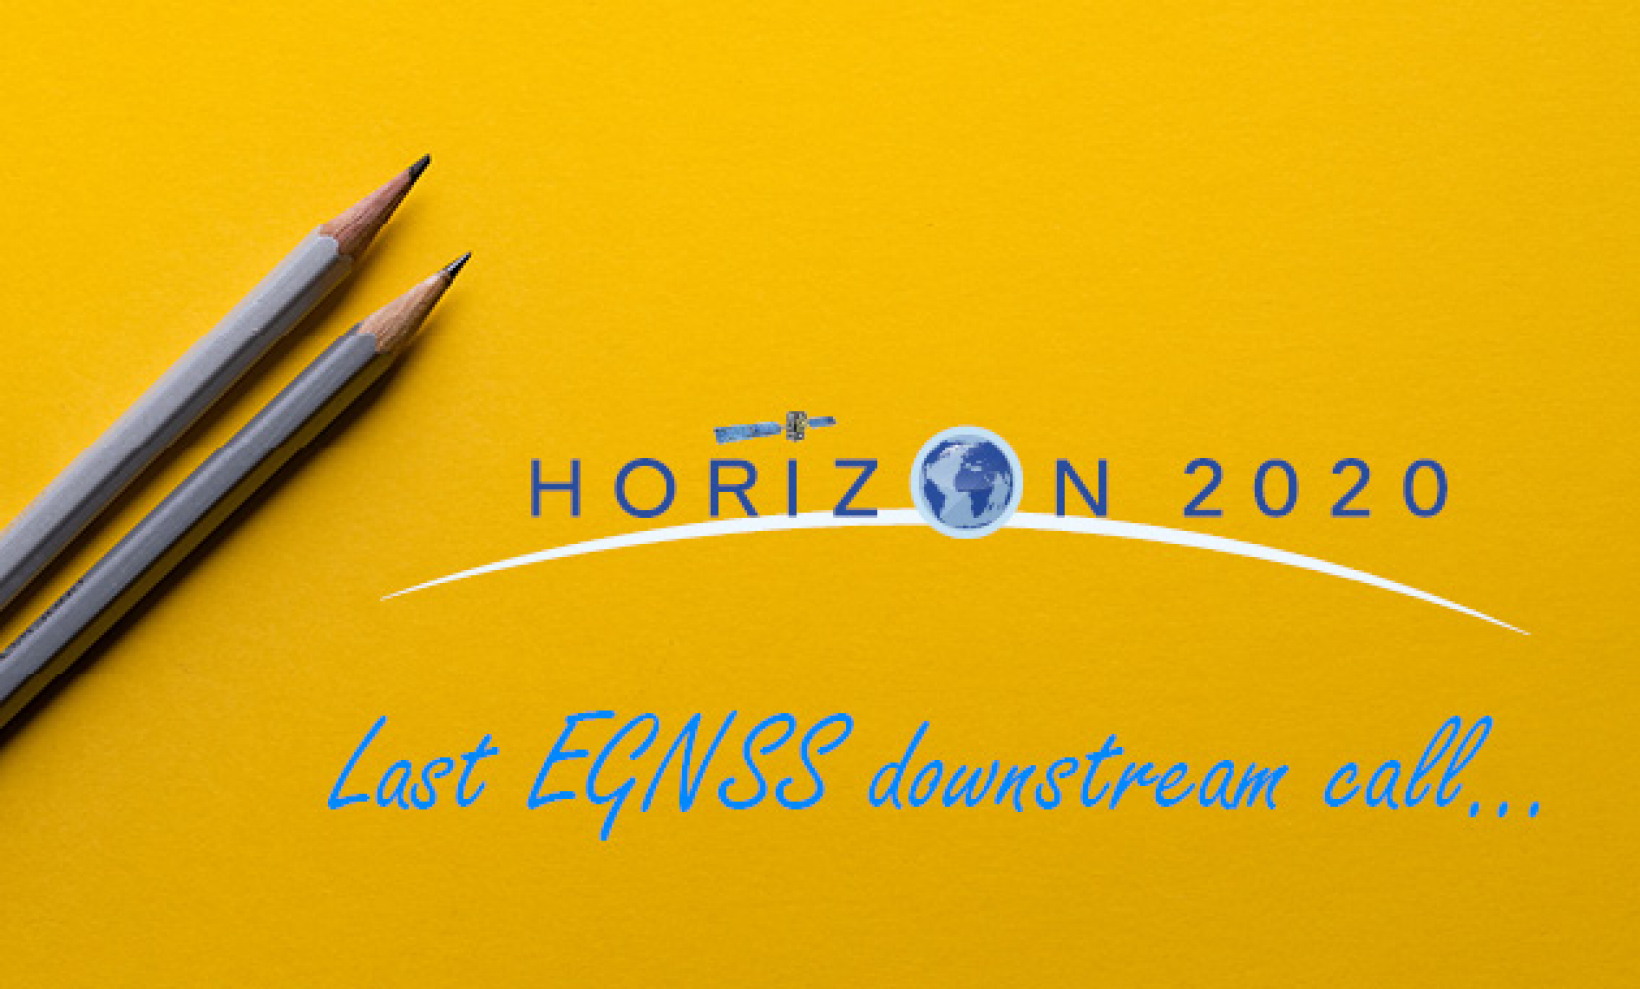 Horizon 2020 is a key driver of international cooperation in the area of EGNSS